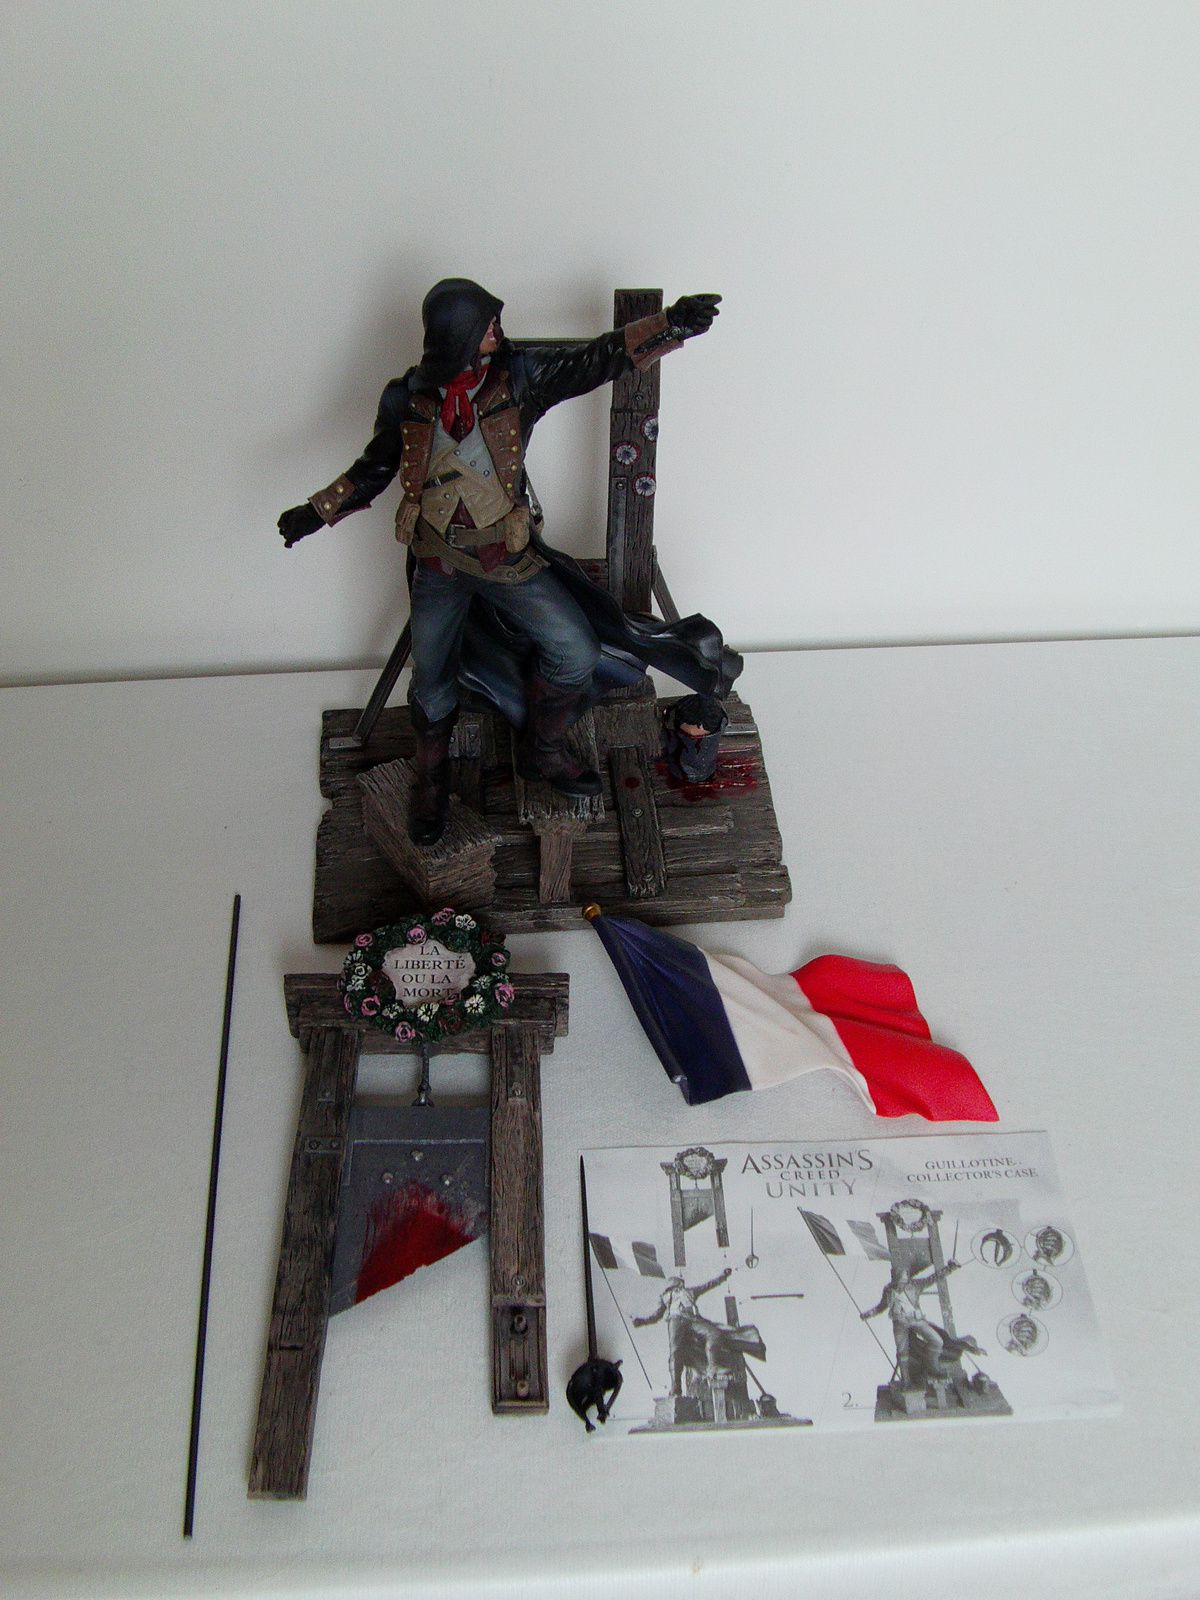 [Déballage] Assassin's Creed Unity Guillotine Edition